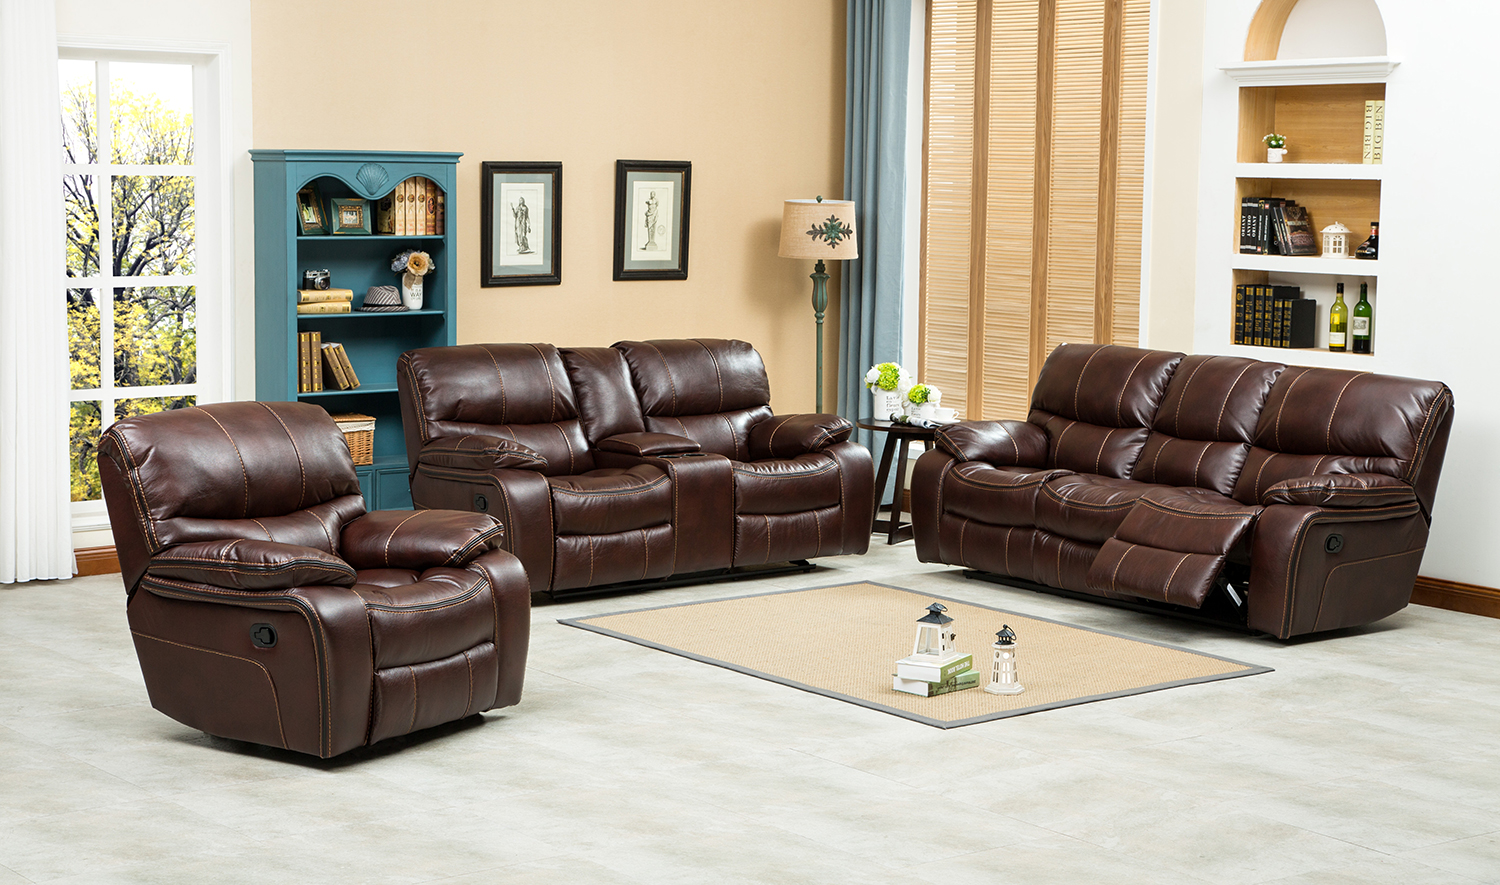 Pensylvania-Recliner-Lounge-Suite ... & Pensylvania Recliner Lounge Suite - Discount Decor - cheap ... islam-shia.org